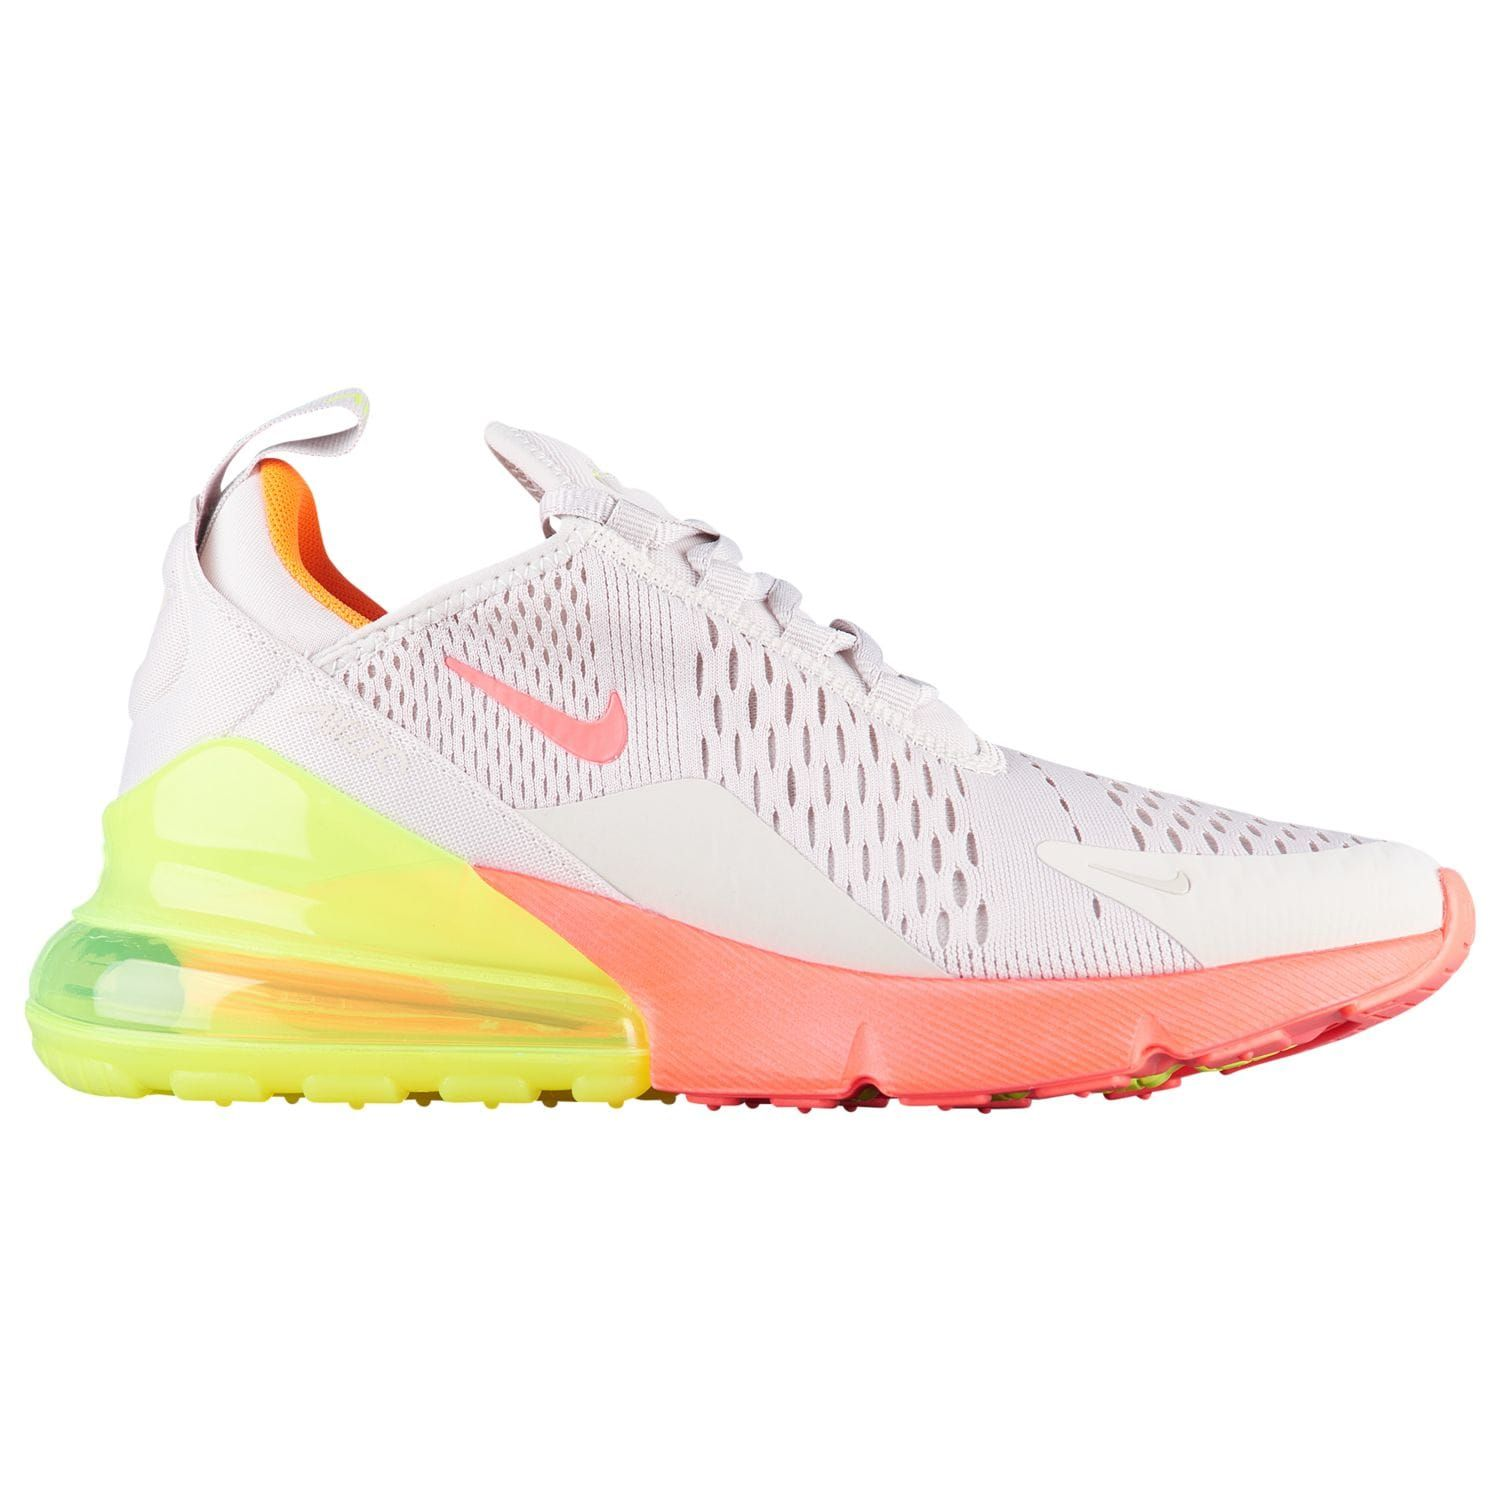 ae17c0682aee Nike Air Max 270 - Women s - Running - Shoes - Desert Sand Hot Punch Volt Total  Orange